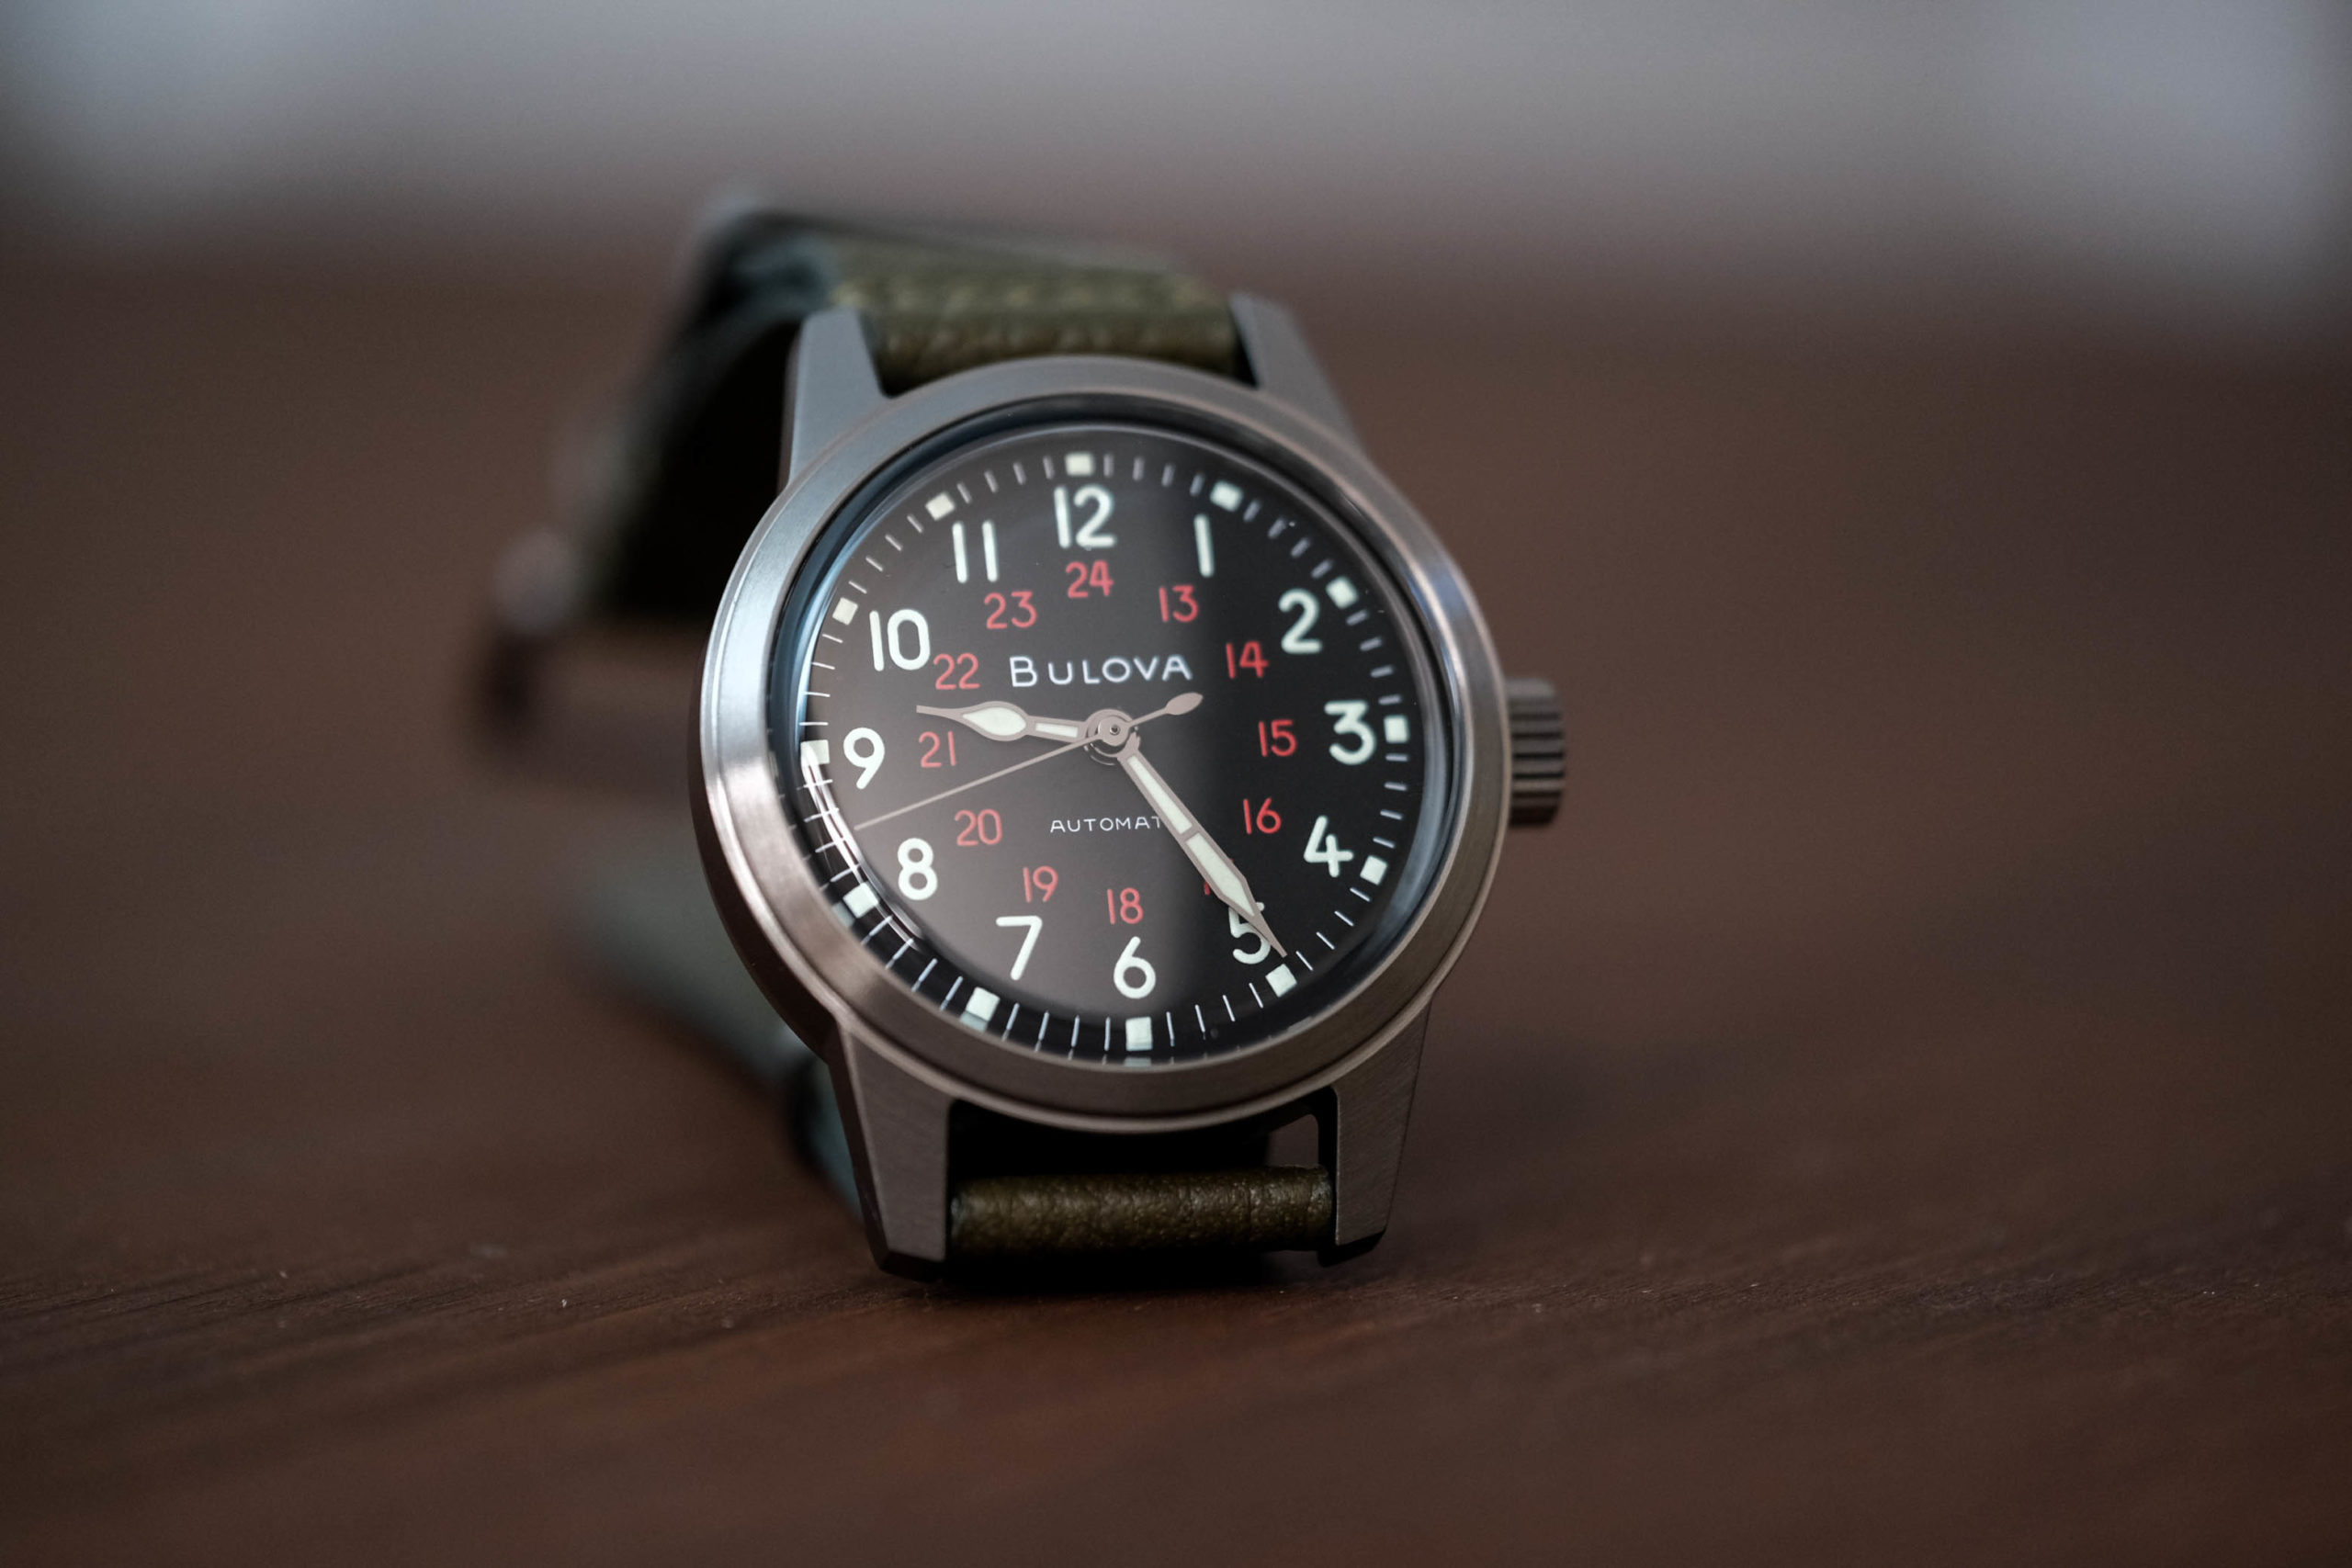 The Hack watch military dial